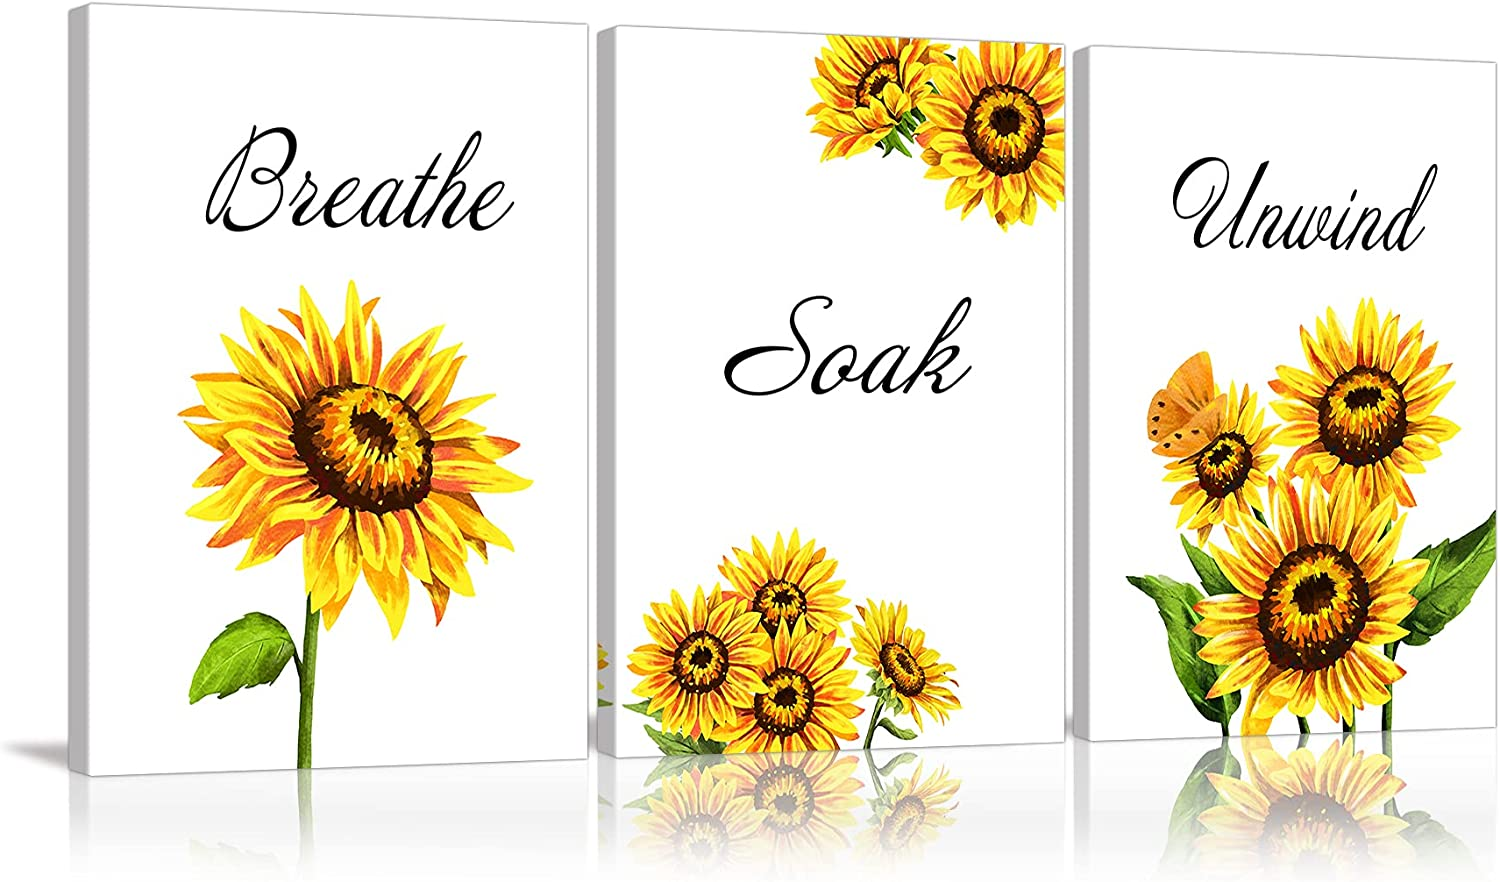 AMEMNY Sunflower Bathroom Decor Wall Super Max 55% OFF sale period limited S Art Print Relax